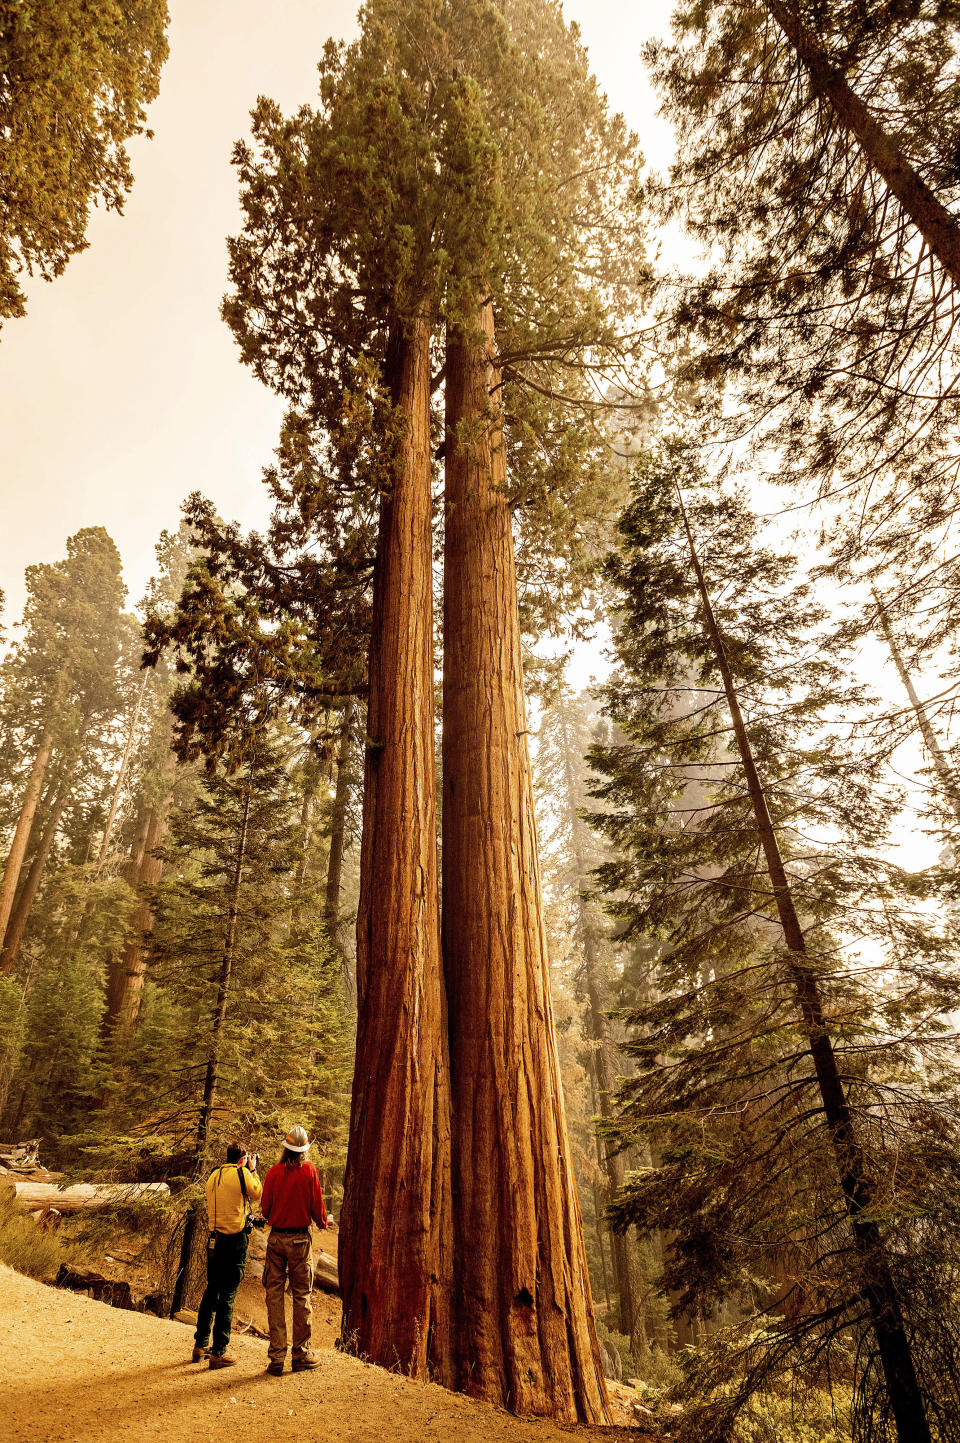 Members of the media look at sequoia trees in Lost Grove as the KNP Complex Fire burns about 15 miles away on Friday, Sept. 17, 2021, in Sequoia National Park, Calif. (AP Photo/Noah Berger)